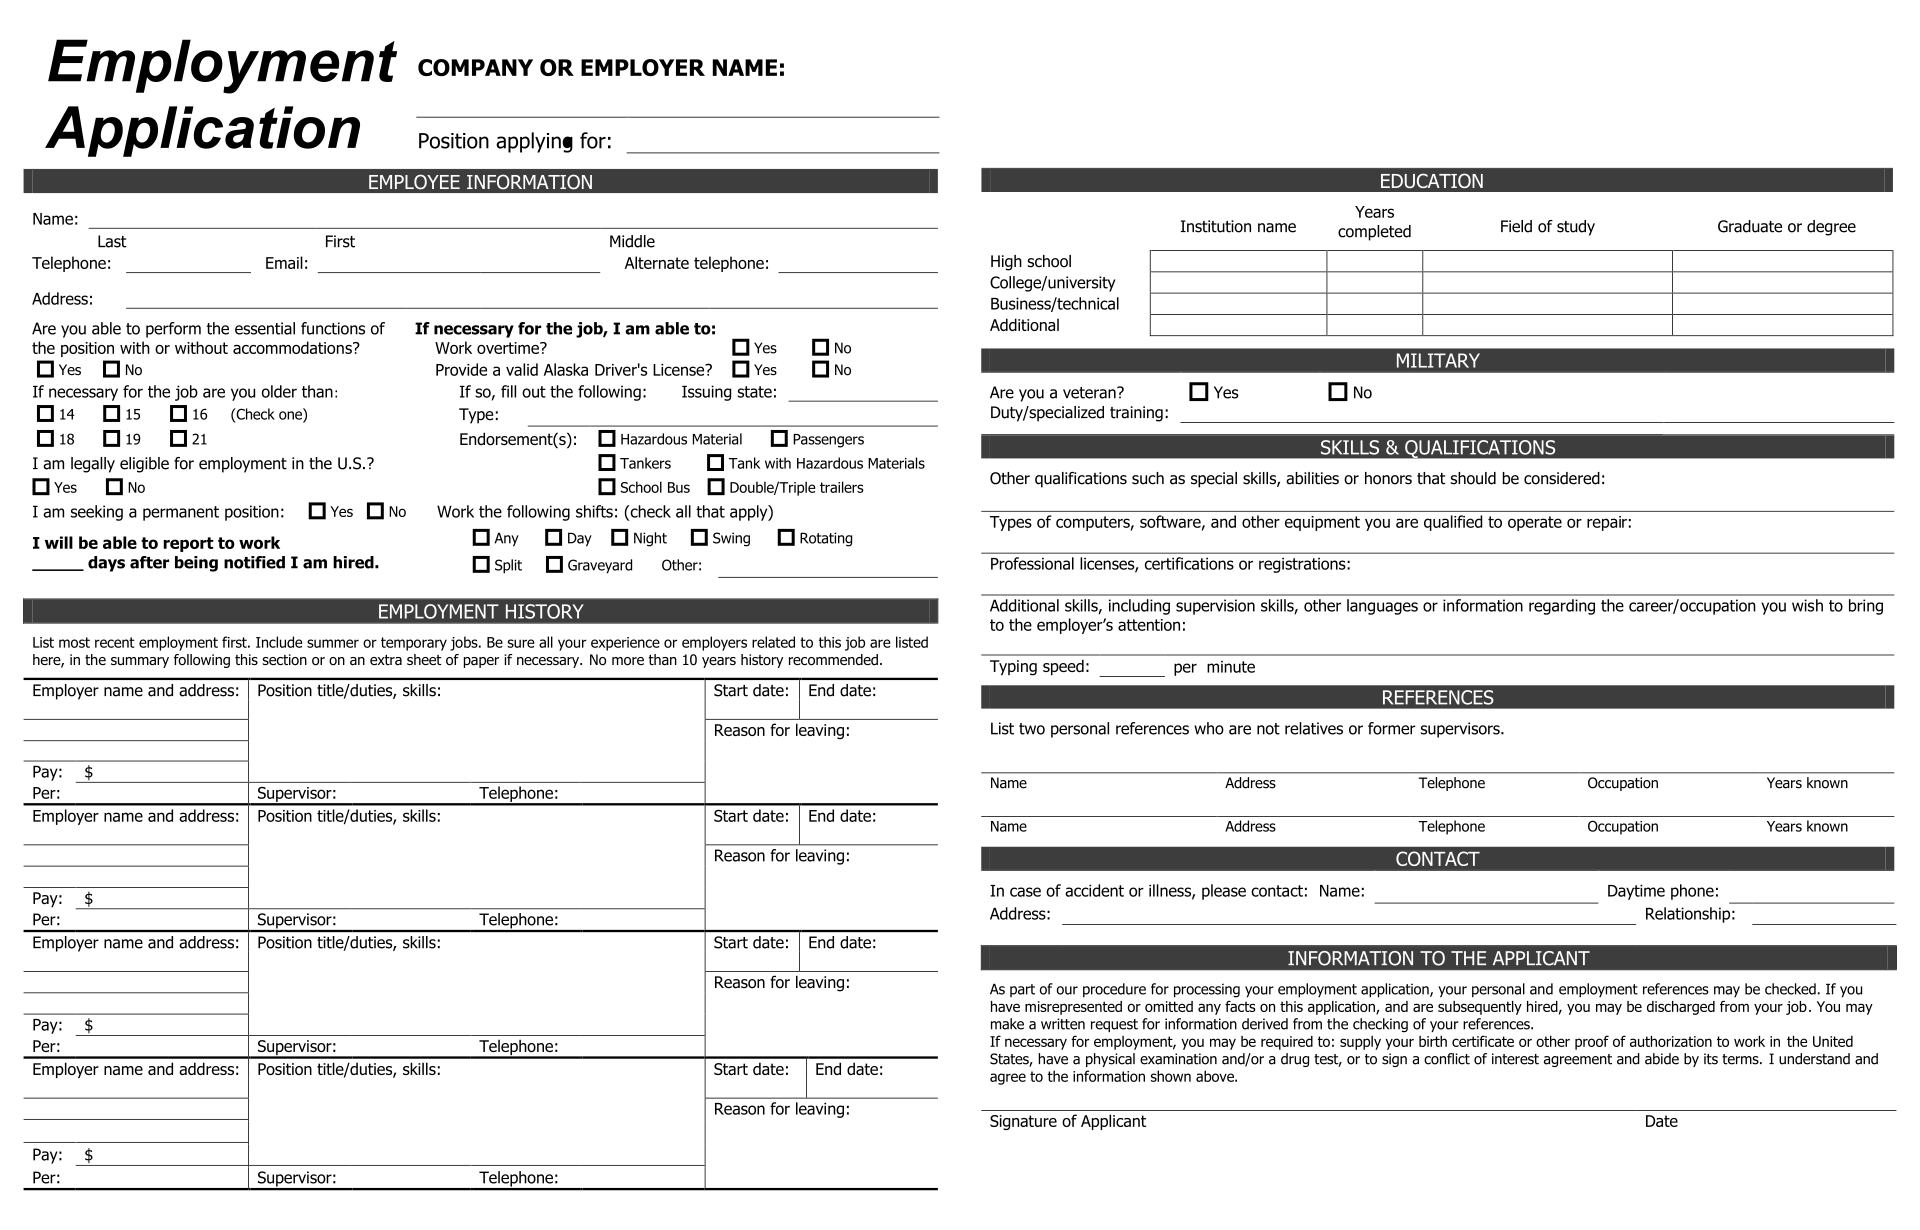 mock application form mock application form happy now tk